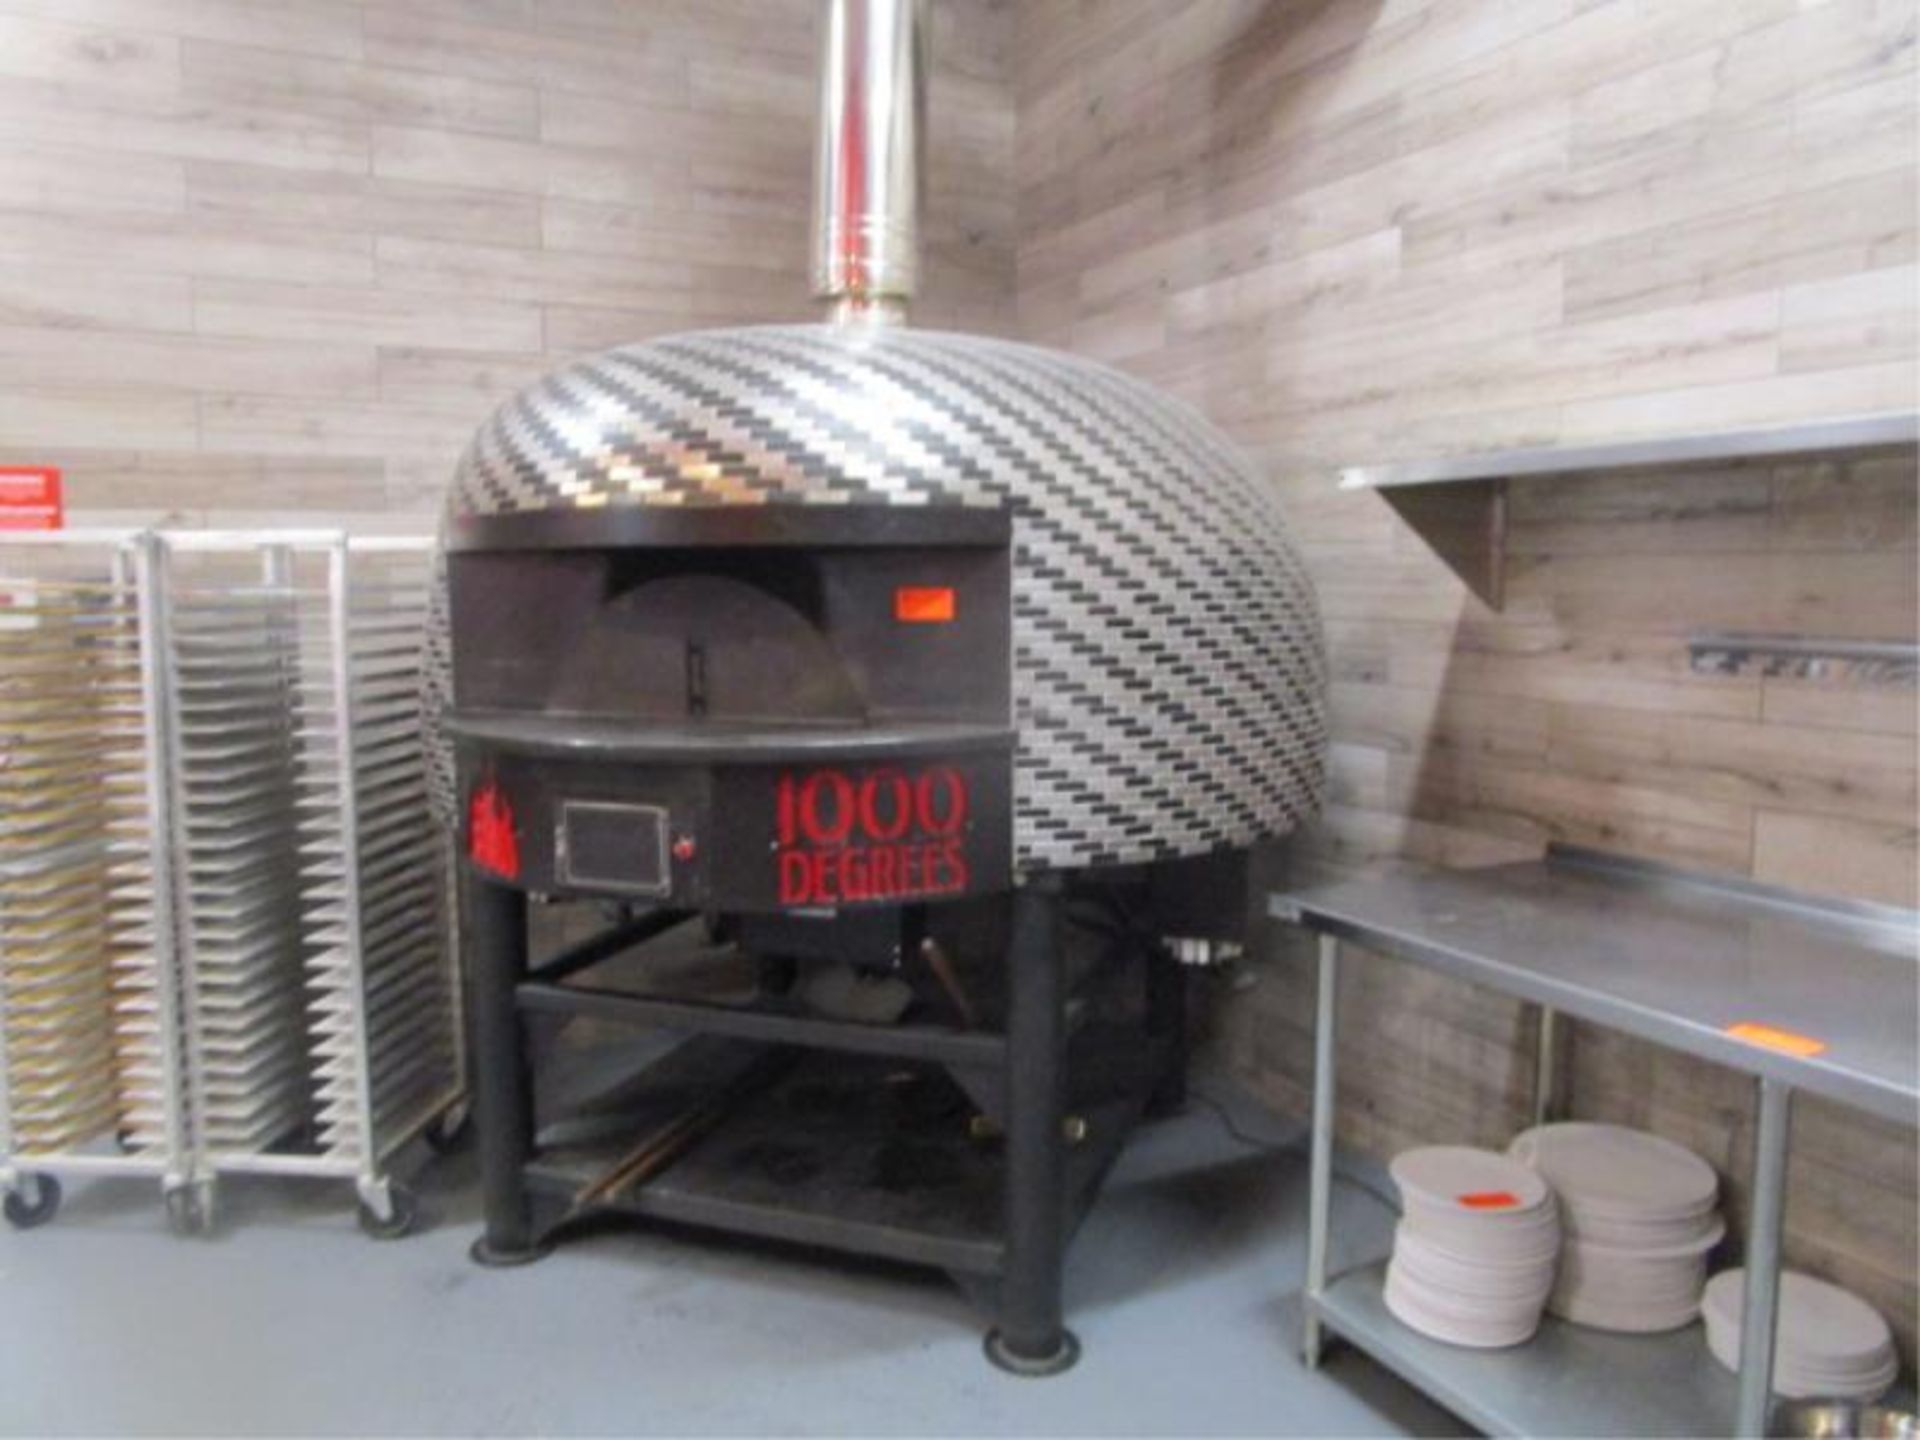 Lot 19 - Pizza Oven by Marra, Dome Shaped, Model: RT150G, SN: 04582, Approx. 6.5' x 8'w. Buyer will be